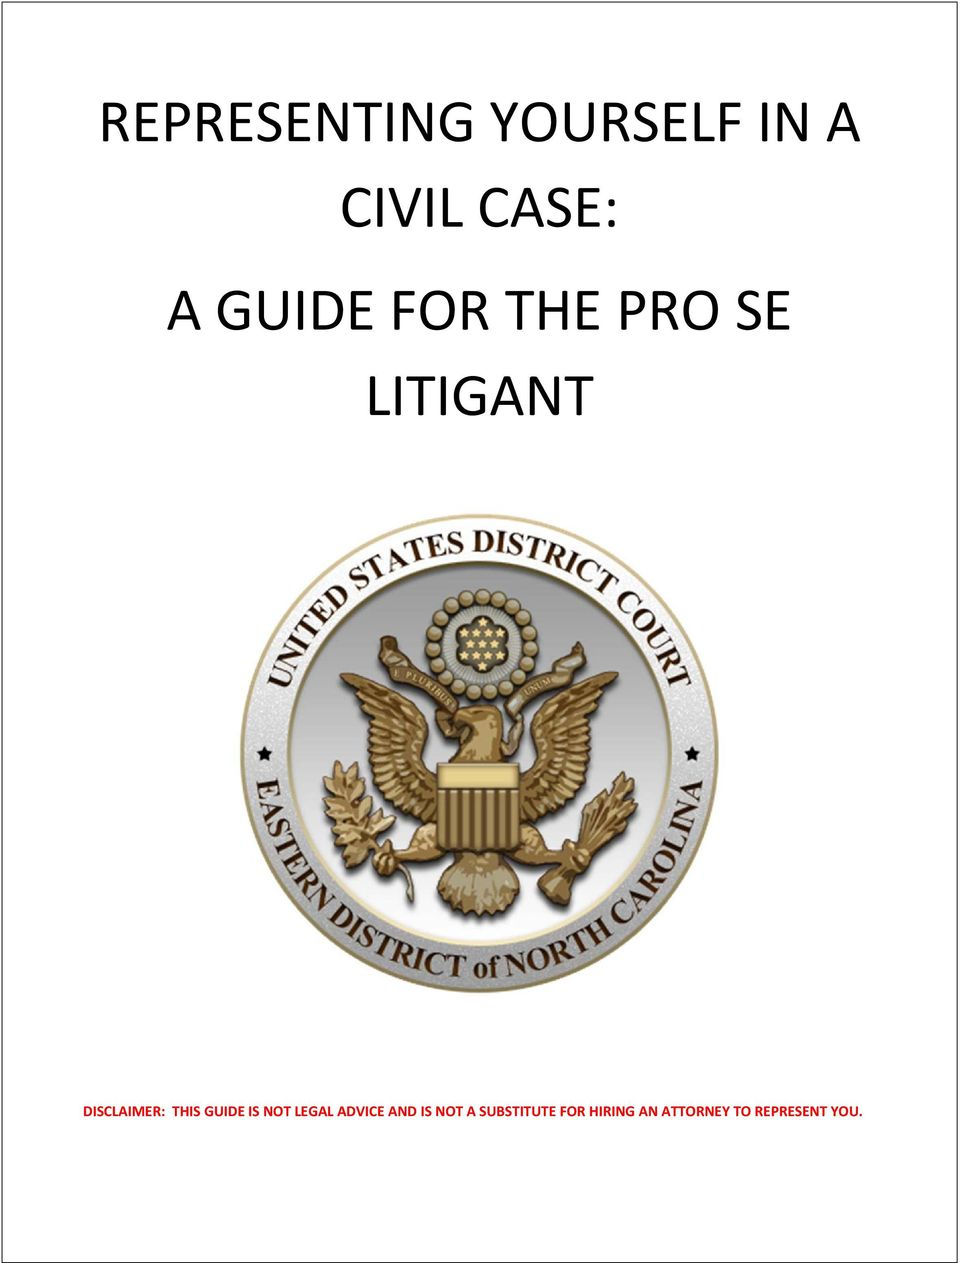 THIS GUIDE IS NOT LEGAL ADVICE AND IS NOT A